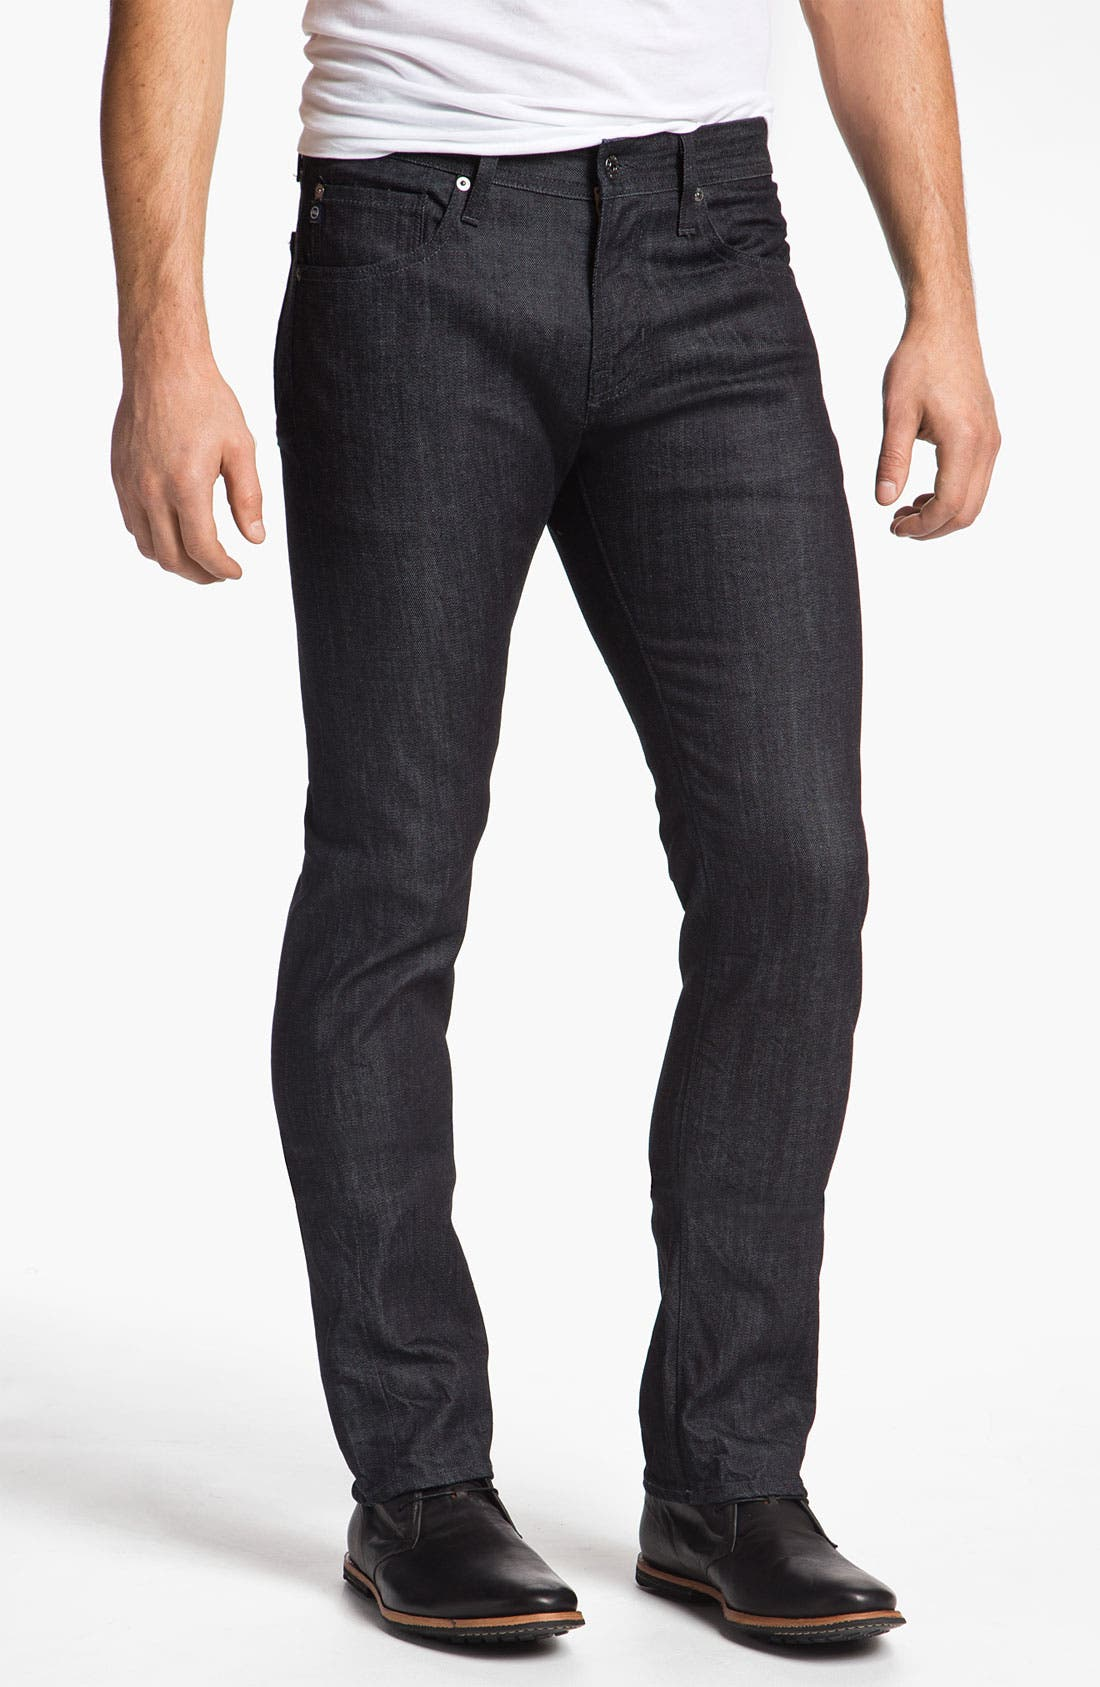 Alternate Image 1 Selected - AG Jeans 'Matchbox' Slim Straight Leg Jeans (Baltic)(Save Now through 12/9)